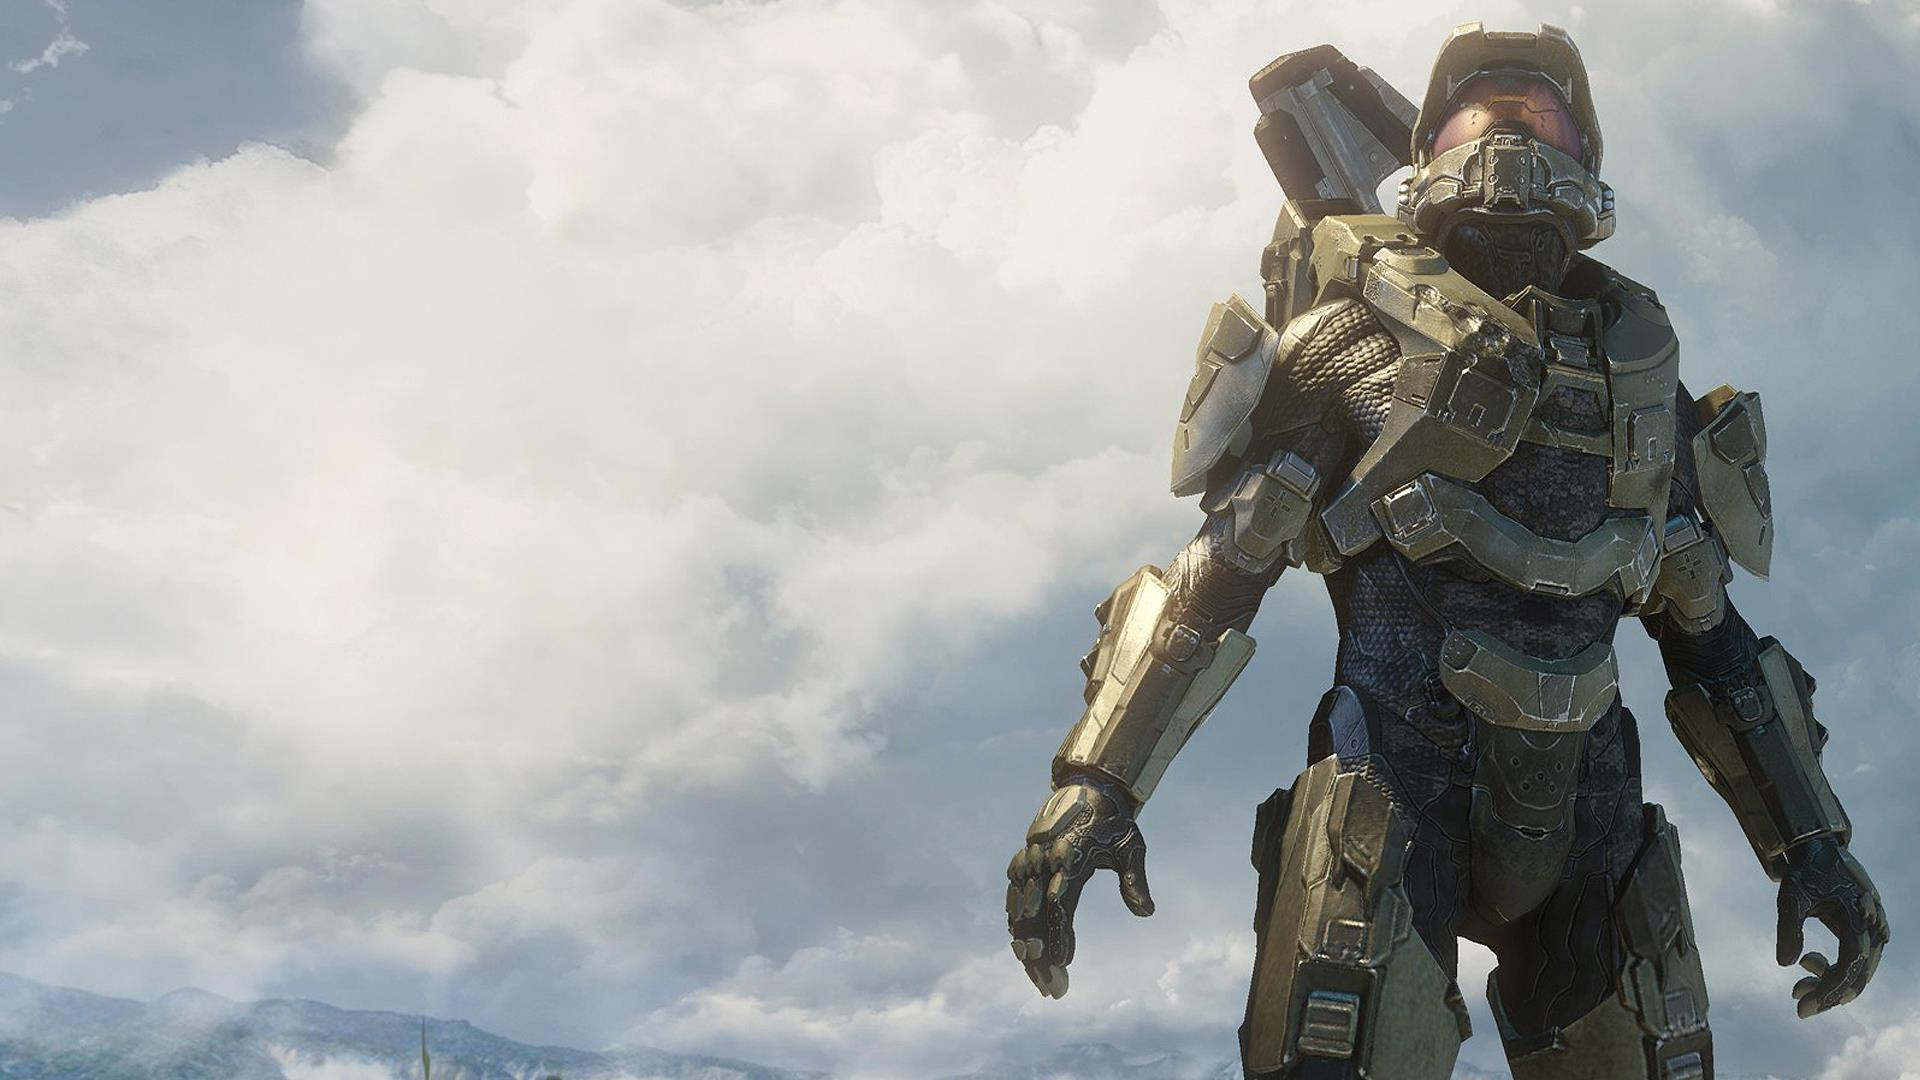 Halo Hd Wallpapers Backgrounds Wallpaper 1920x1080